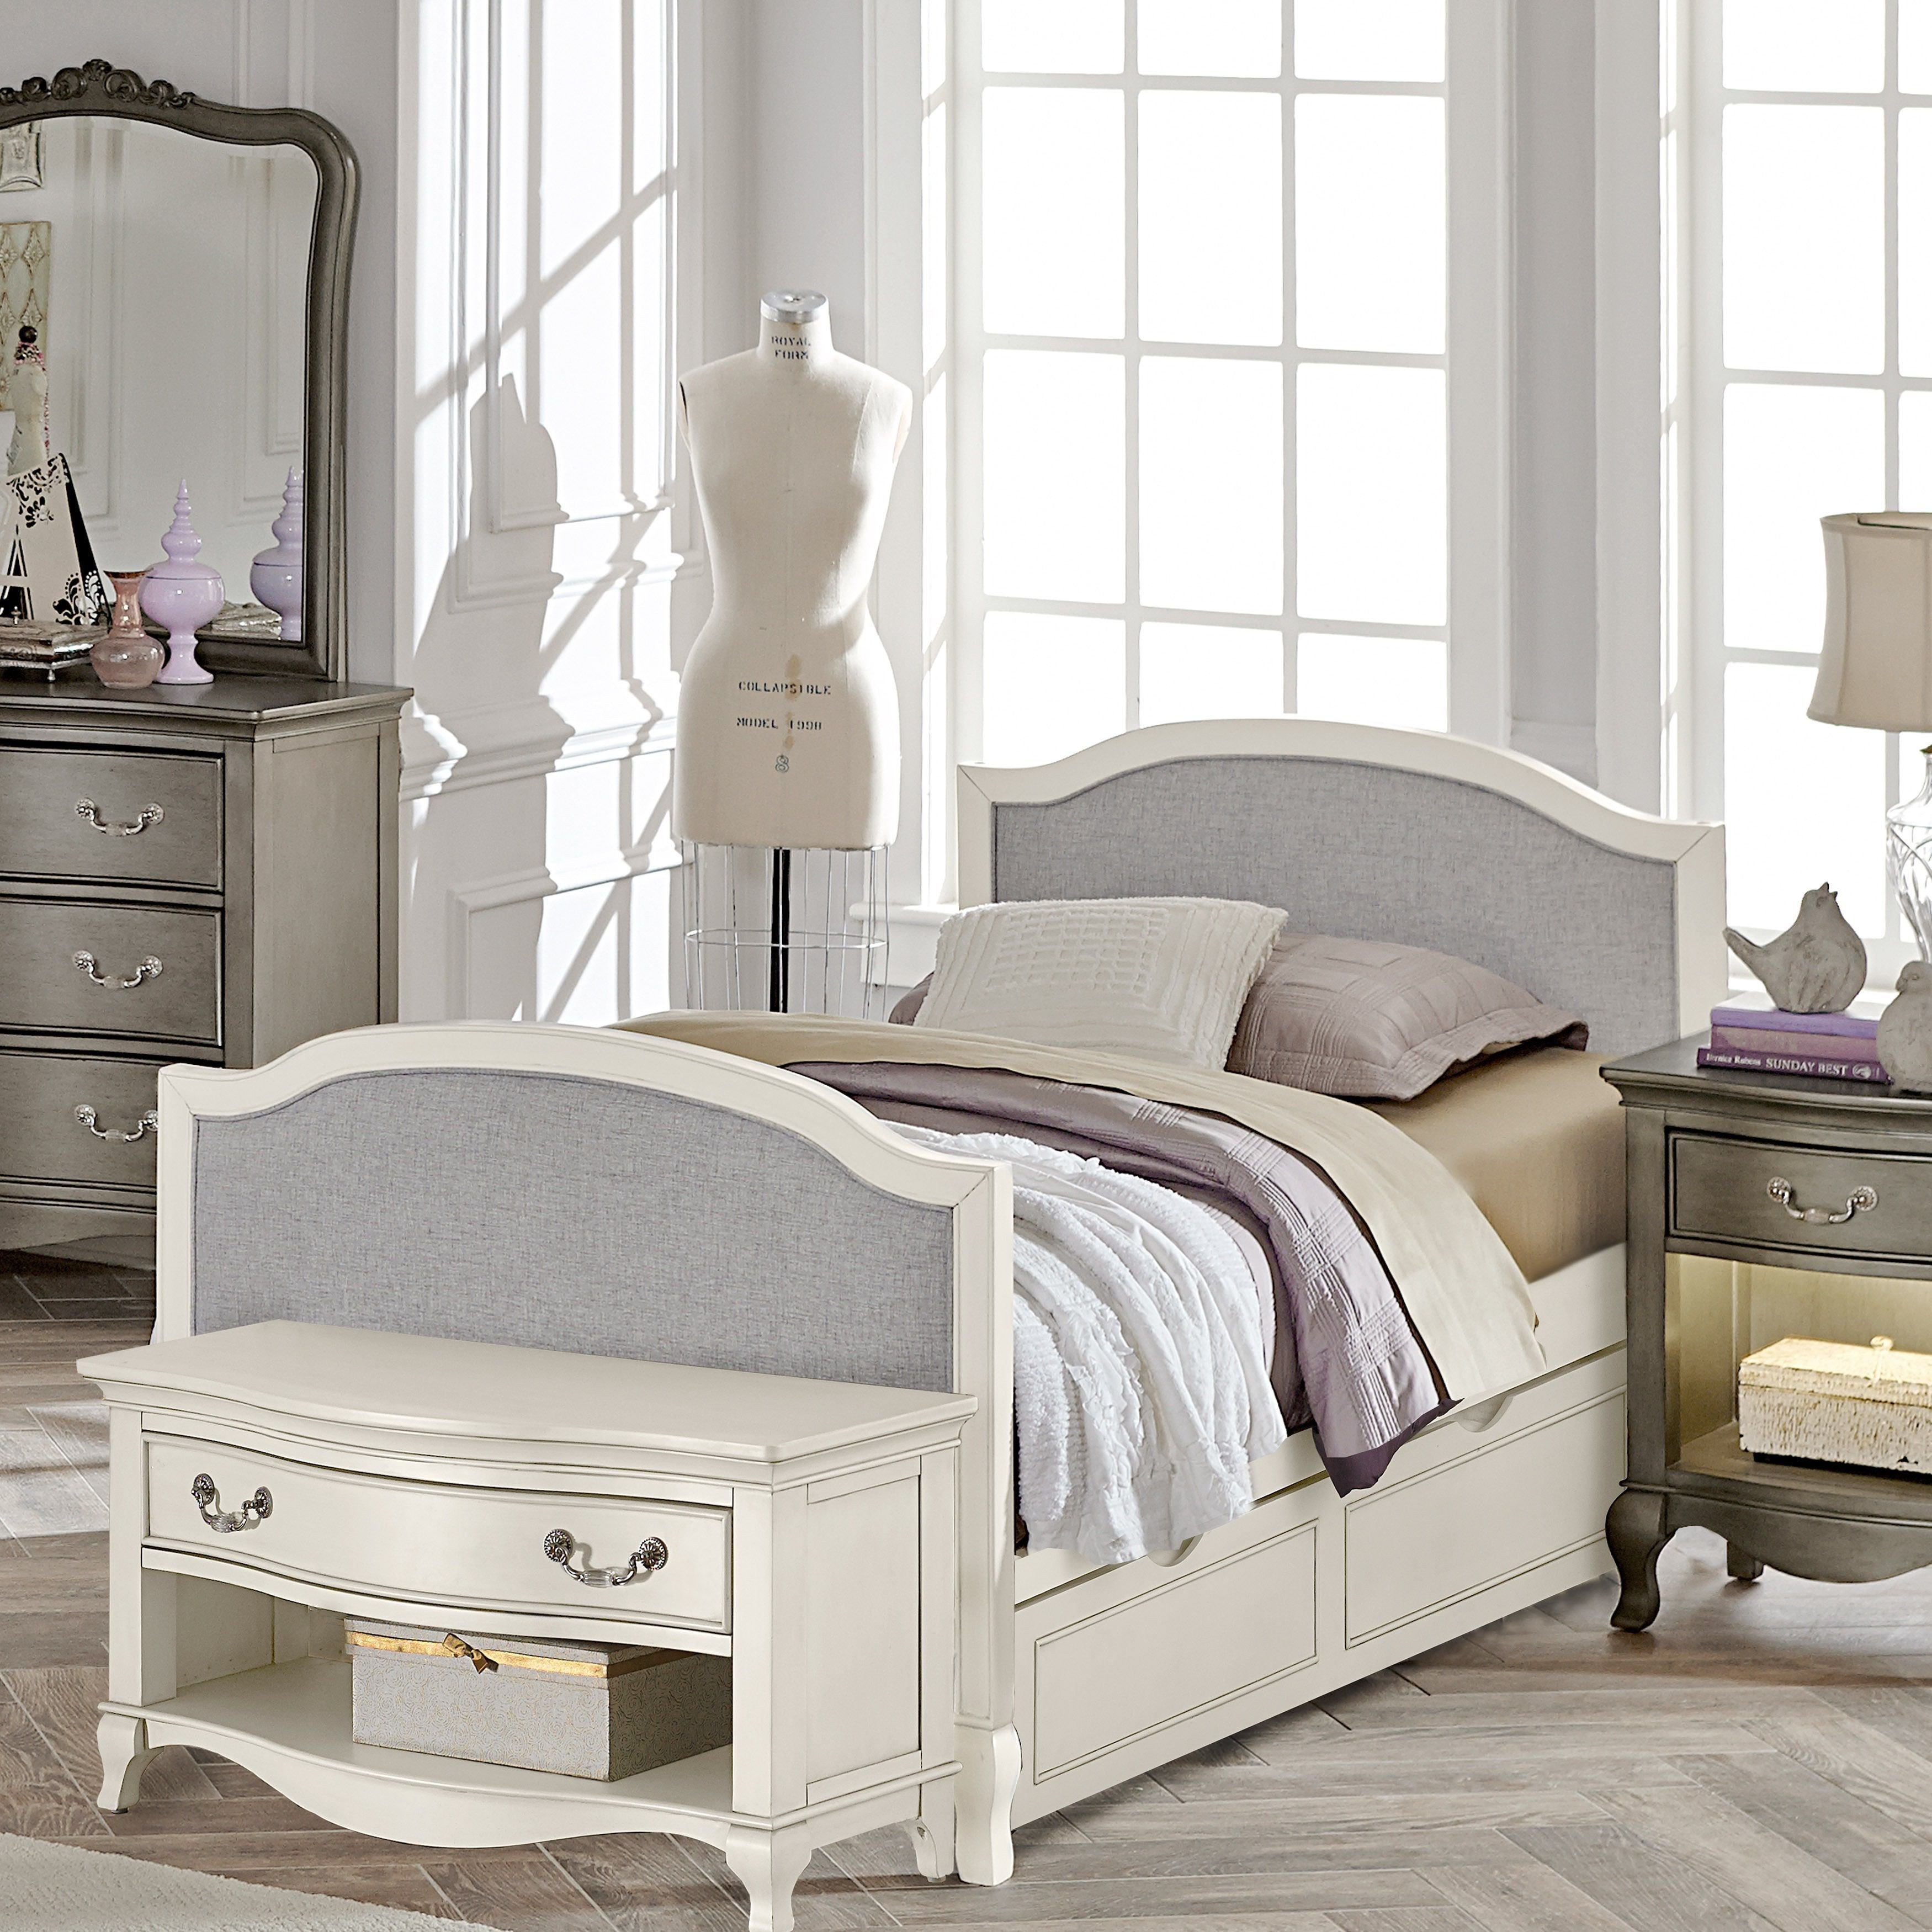 Ikea White Bedroom Furniture Best Of Kensington Victoria Antique White Twin Size Upholstered